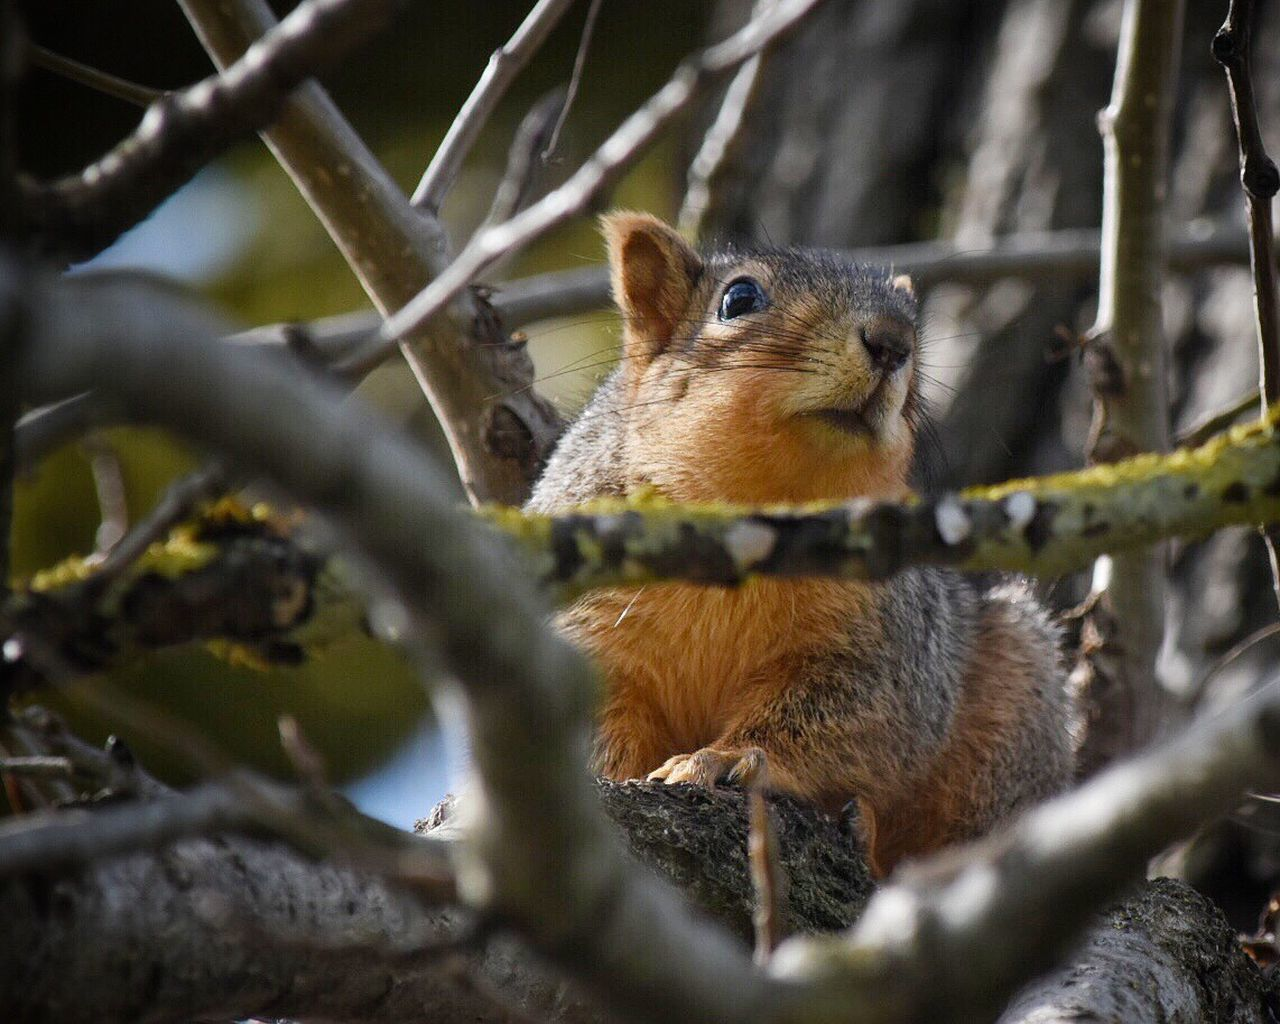 One Animal Animals In The Wild Animal Themes Tree Animal Wildlife Branch Nature Mammal No People Close-up Outdoors Koala Day Squirrel Animal Photography Looking At Camera Animals In The Wild Low Angle View Nature Tree Branches Lookingup Outside Photography Outdoor Photography Tree Trunk